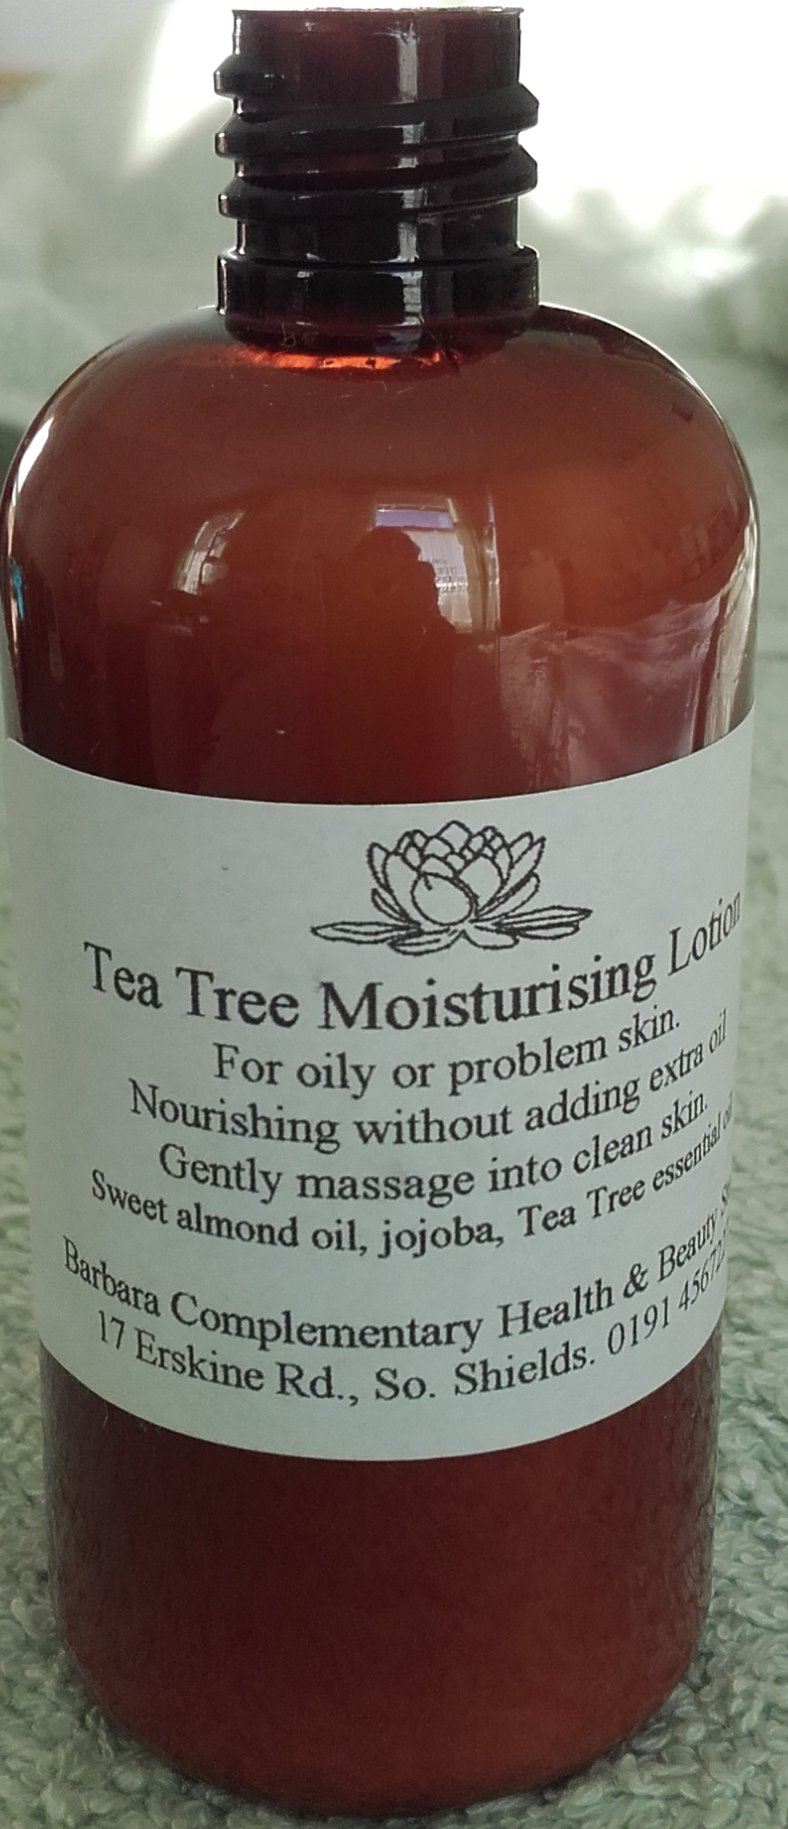 Tea Tree Moisturising Lotion